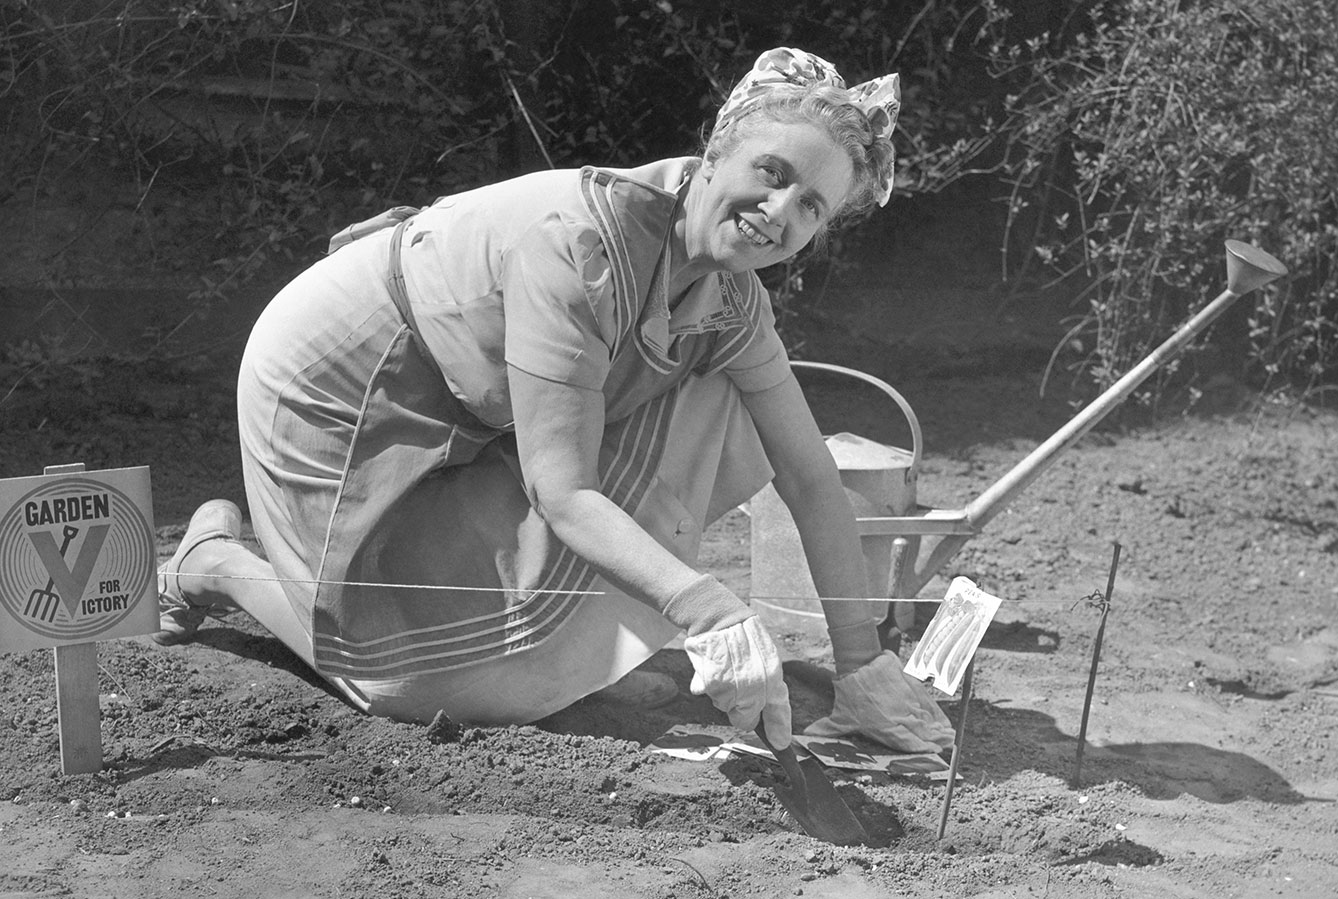 historical image of woman working on victory garden